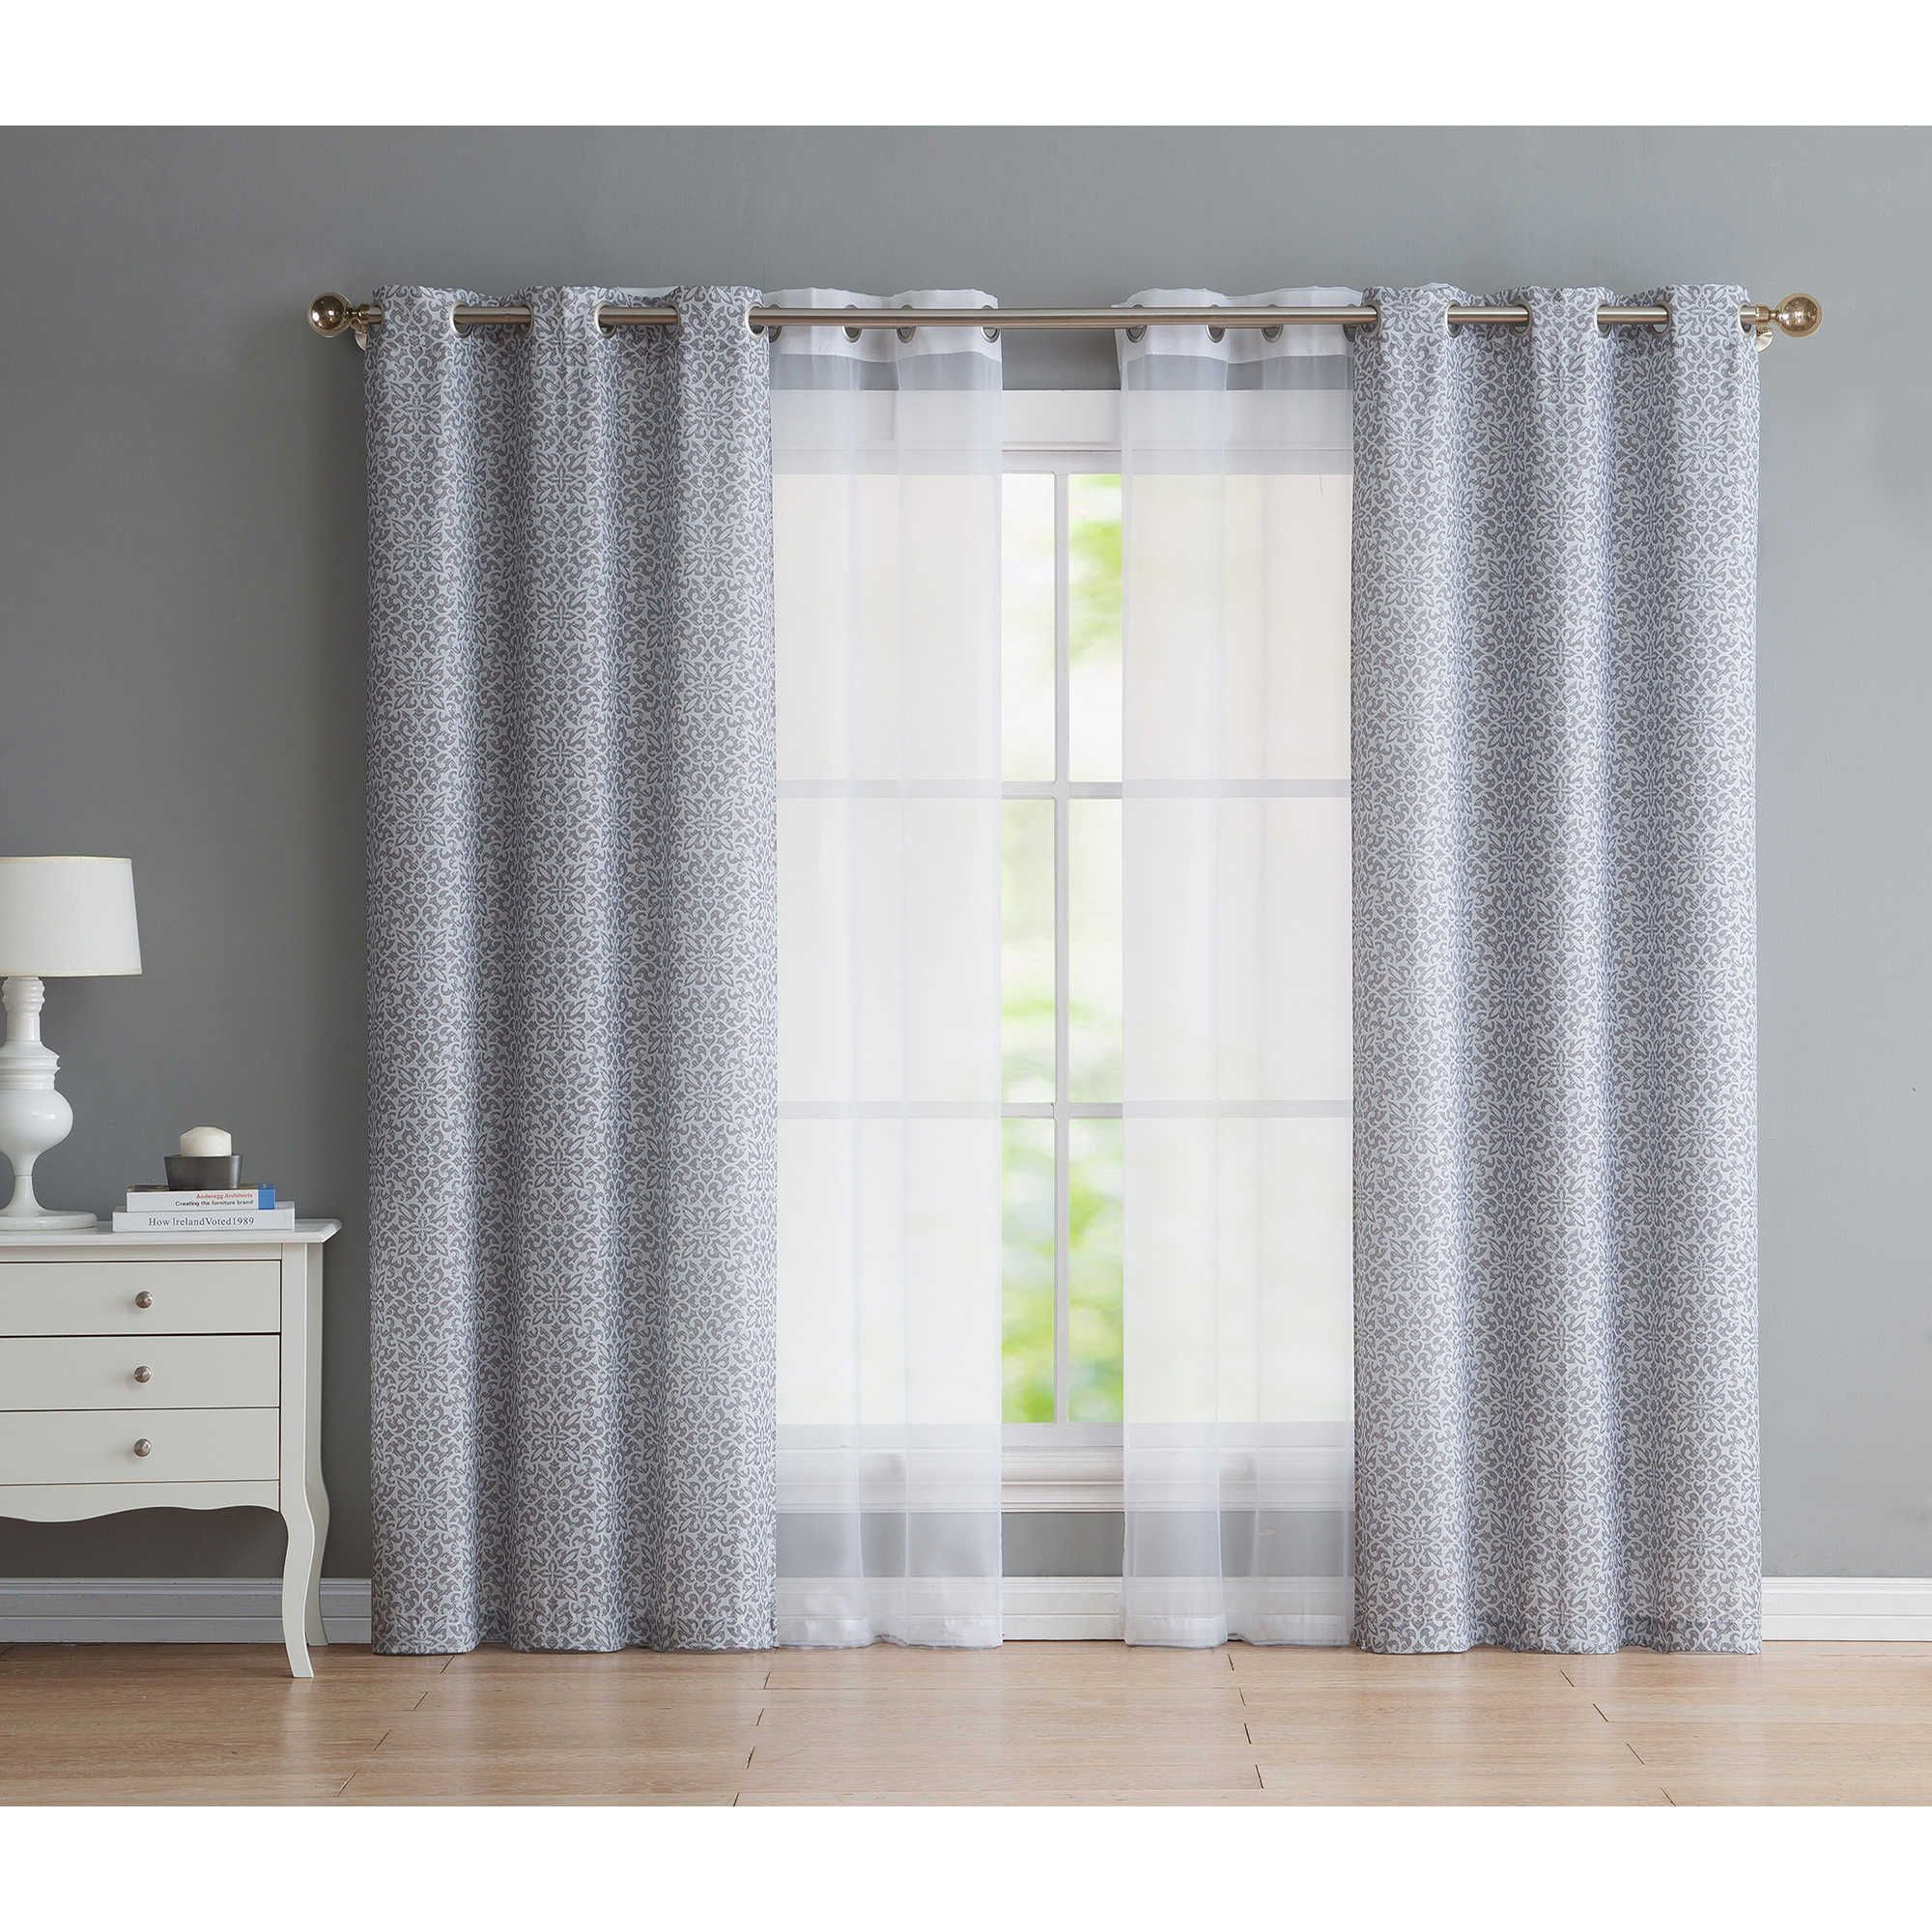 Vcny Estrada 95 Inch Grommet Window Curtain Panels In Grey Set Of 4 Living Room Decor Curtains Curtain Decor Curtains Living Room